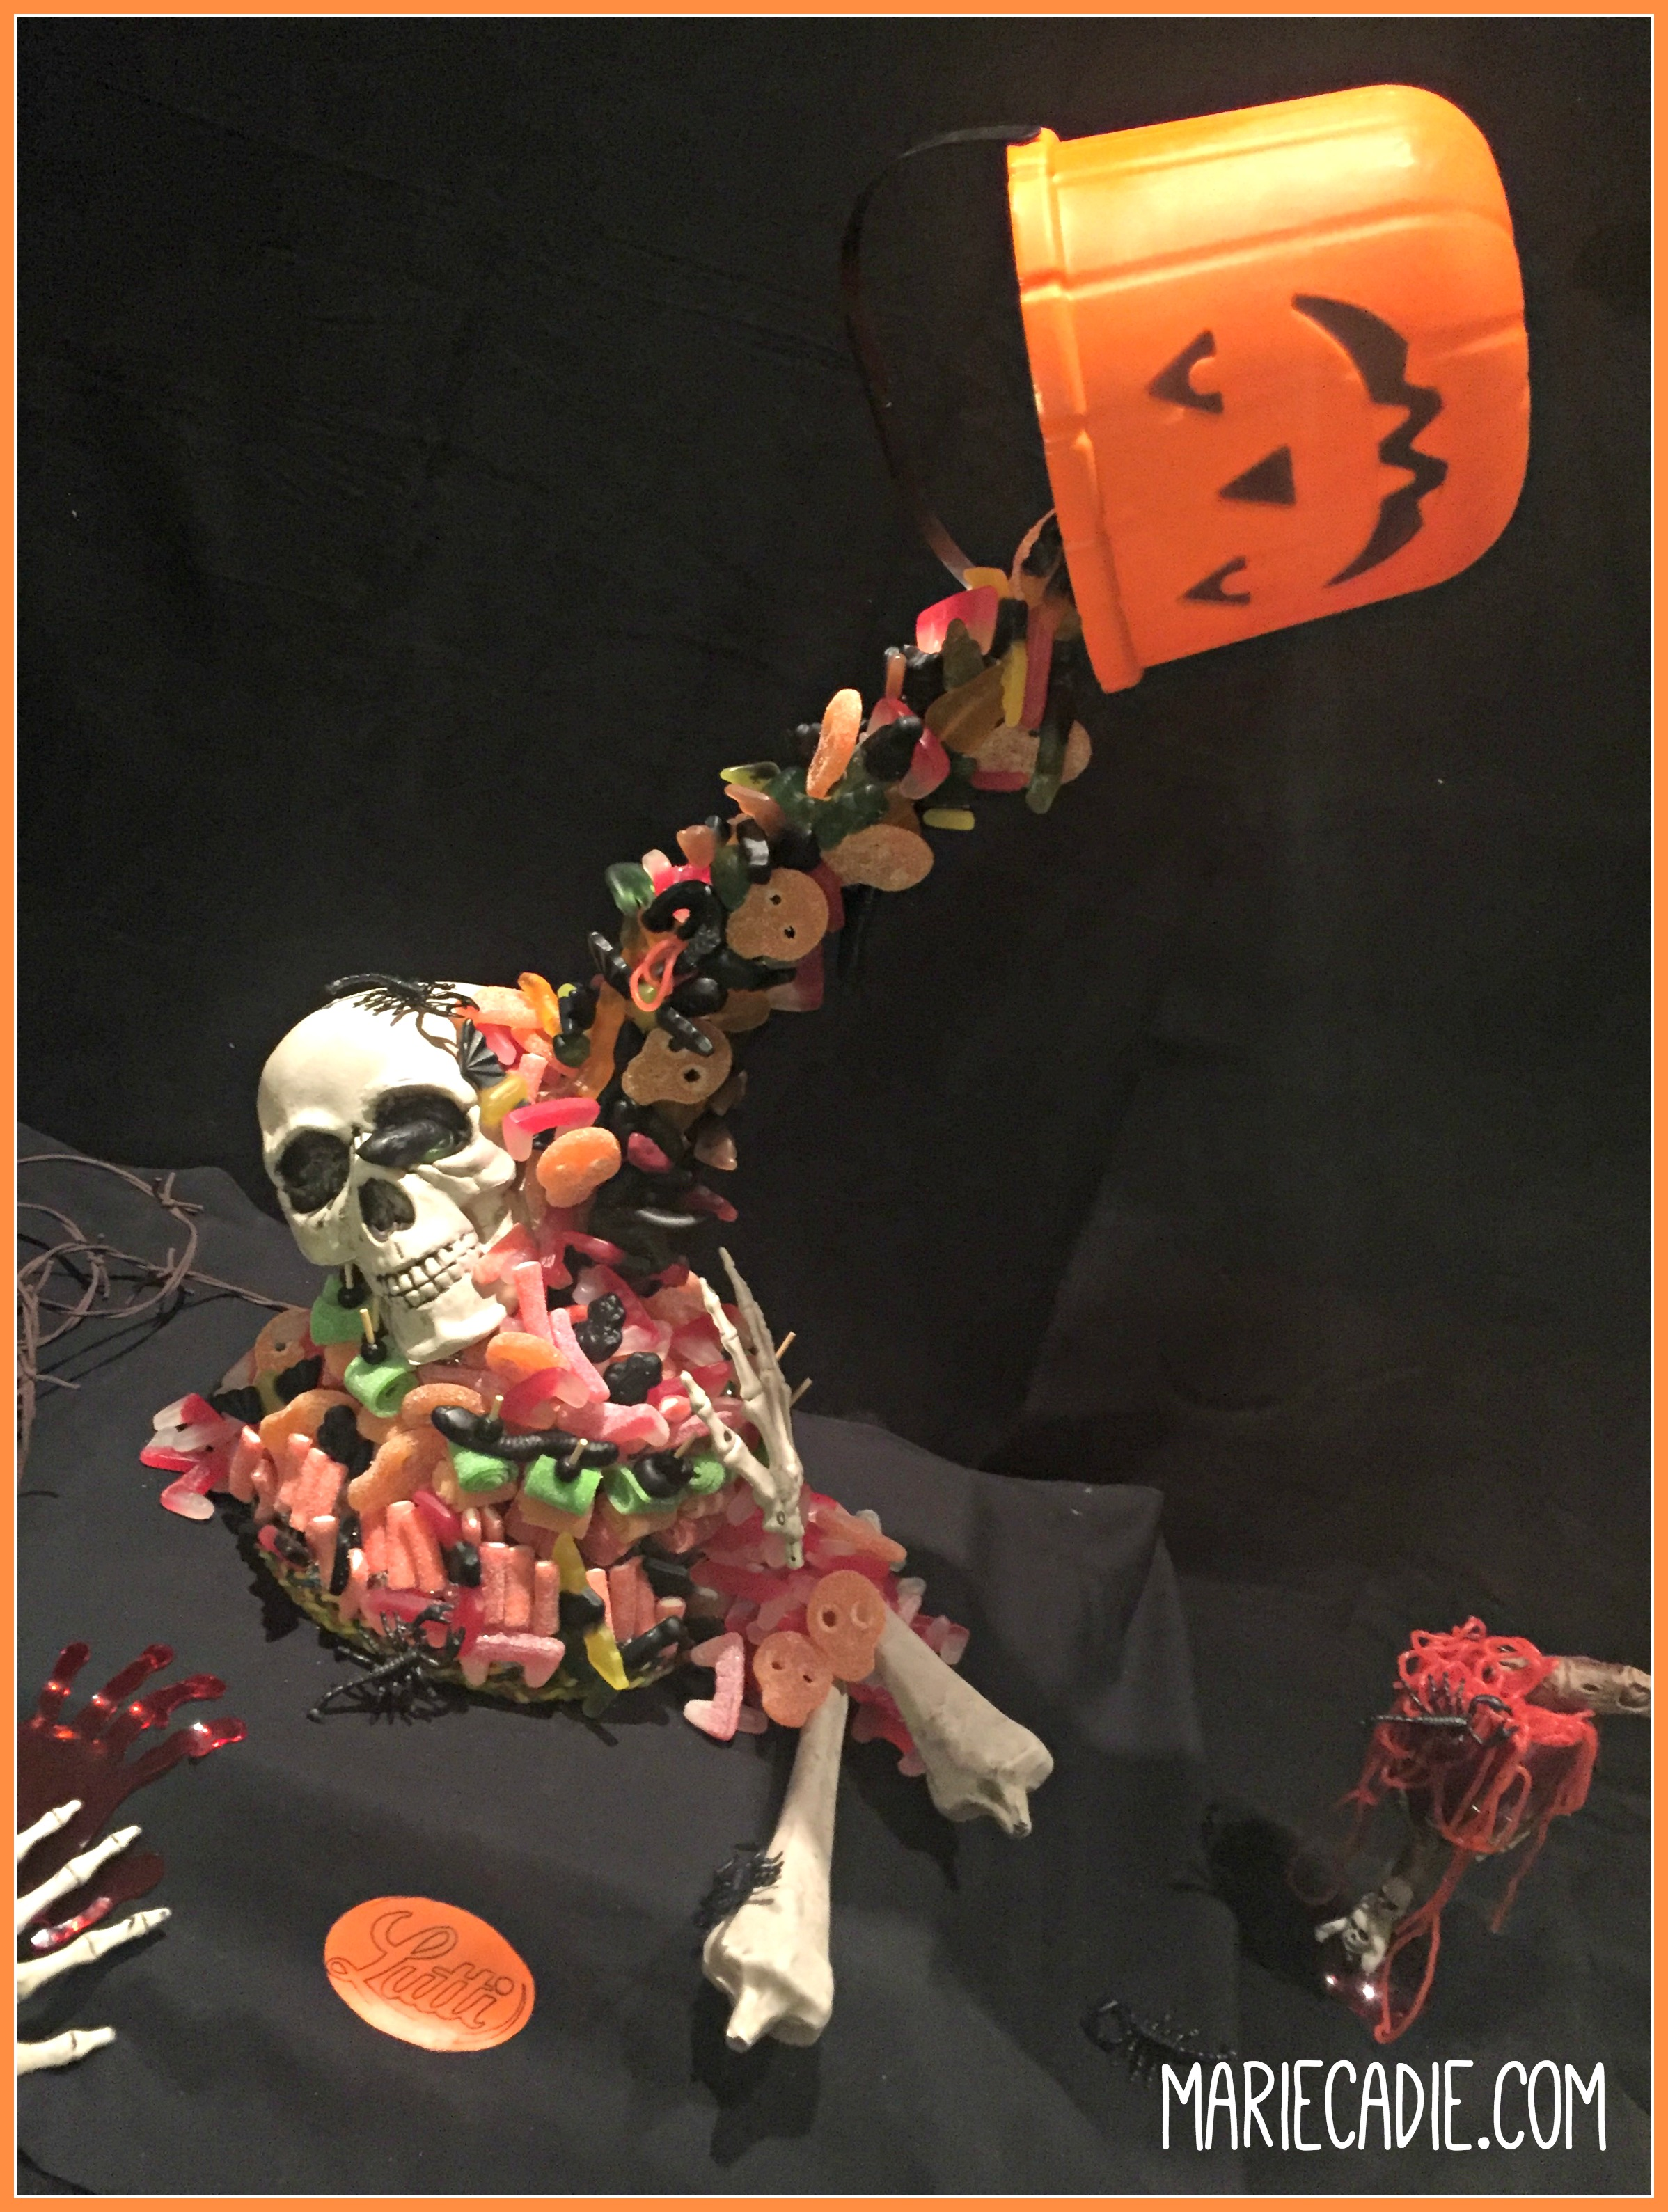 mariecadie-com-halloween-lutti-fun-anti-gravity-candy-cake_5